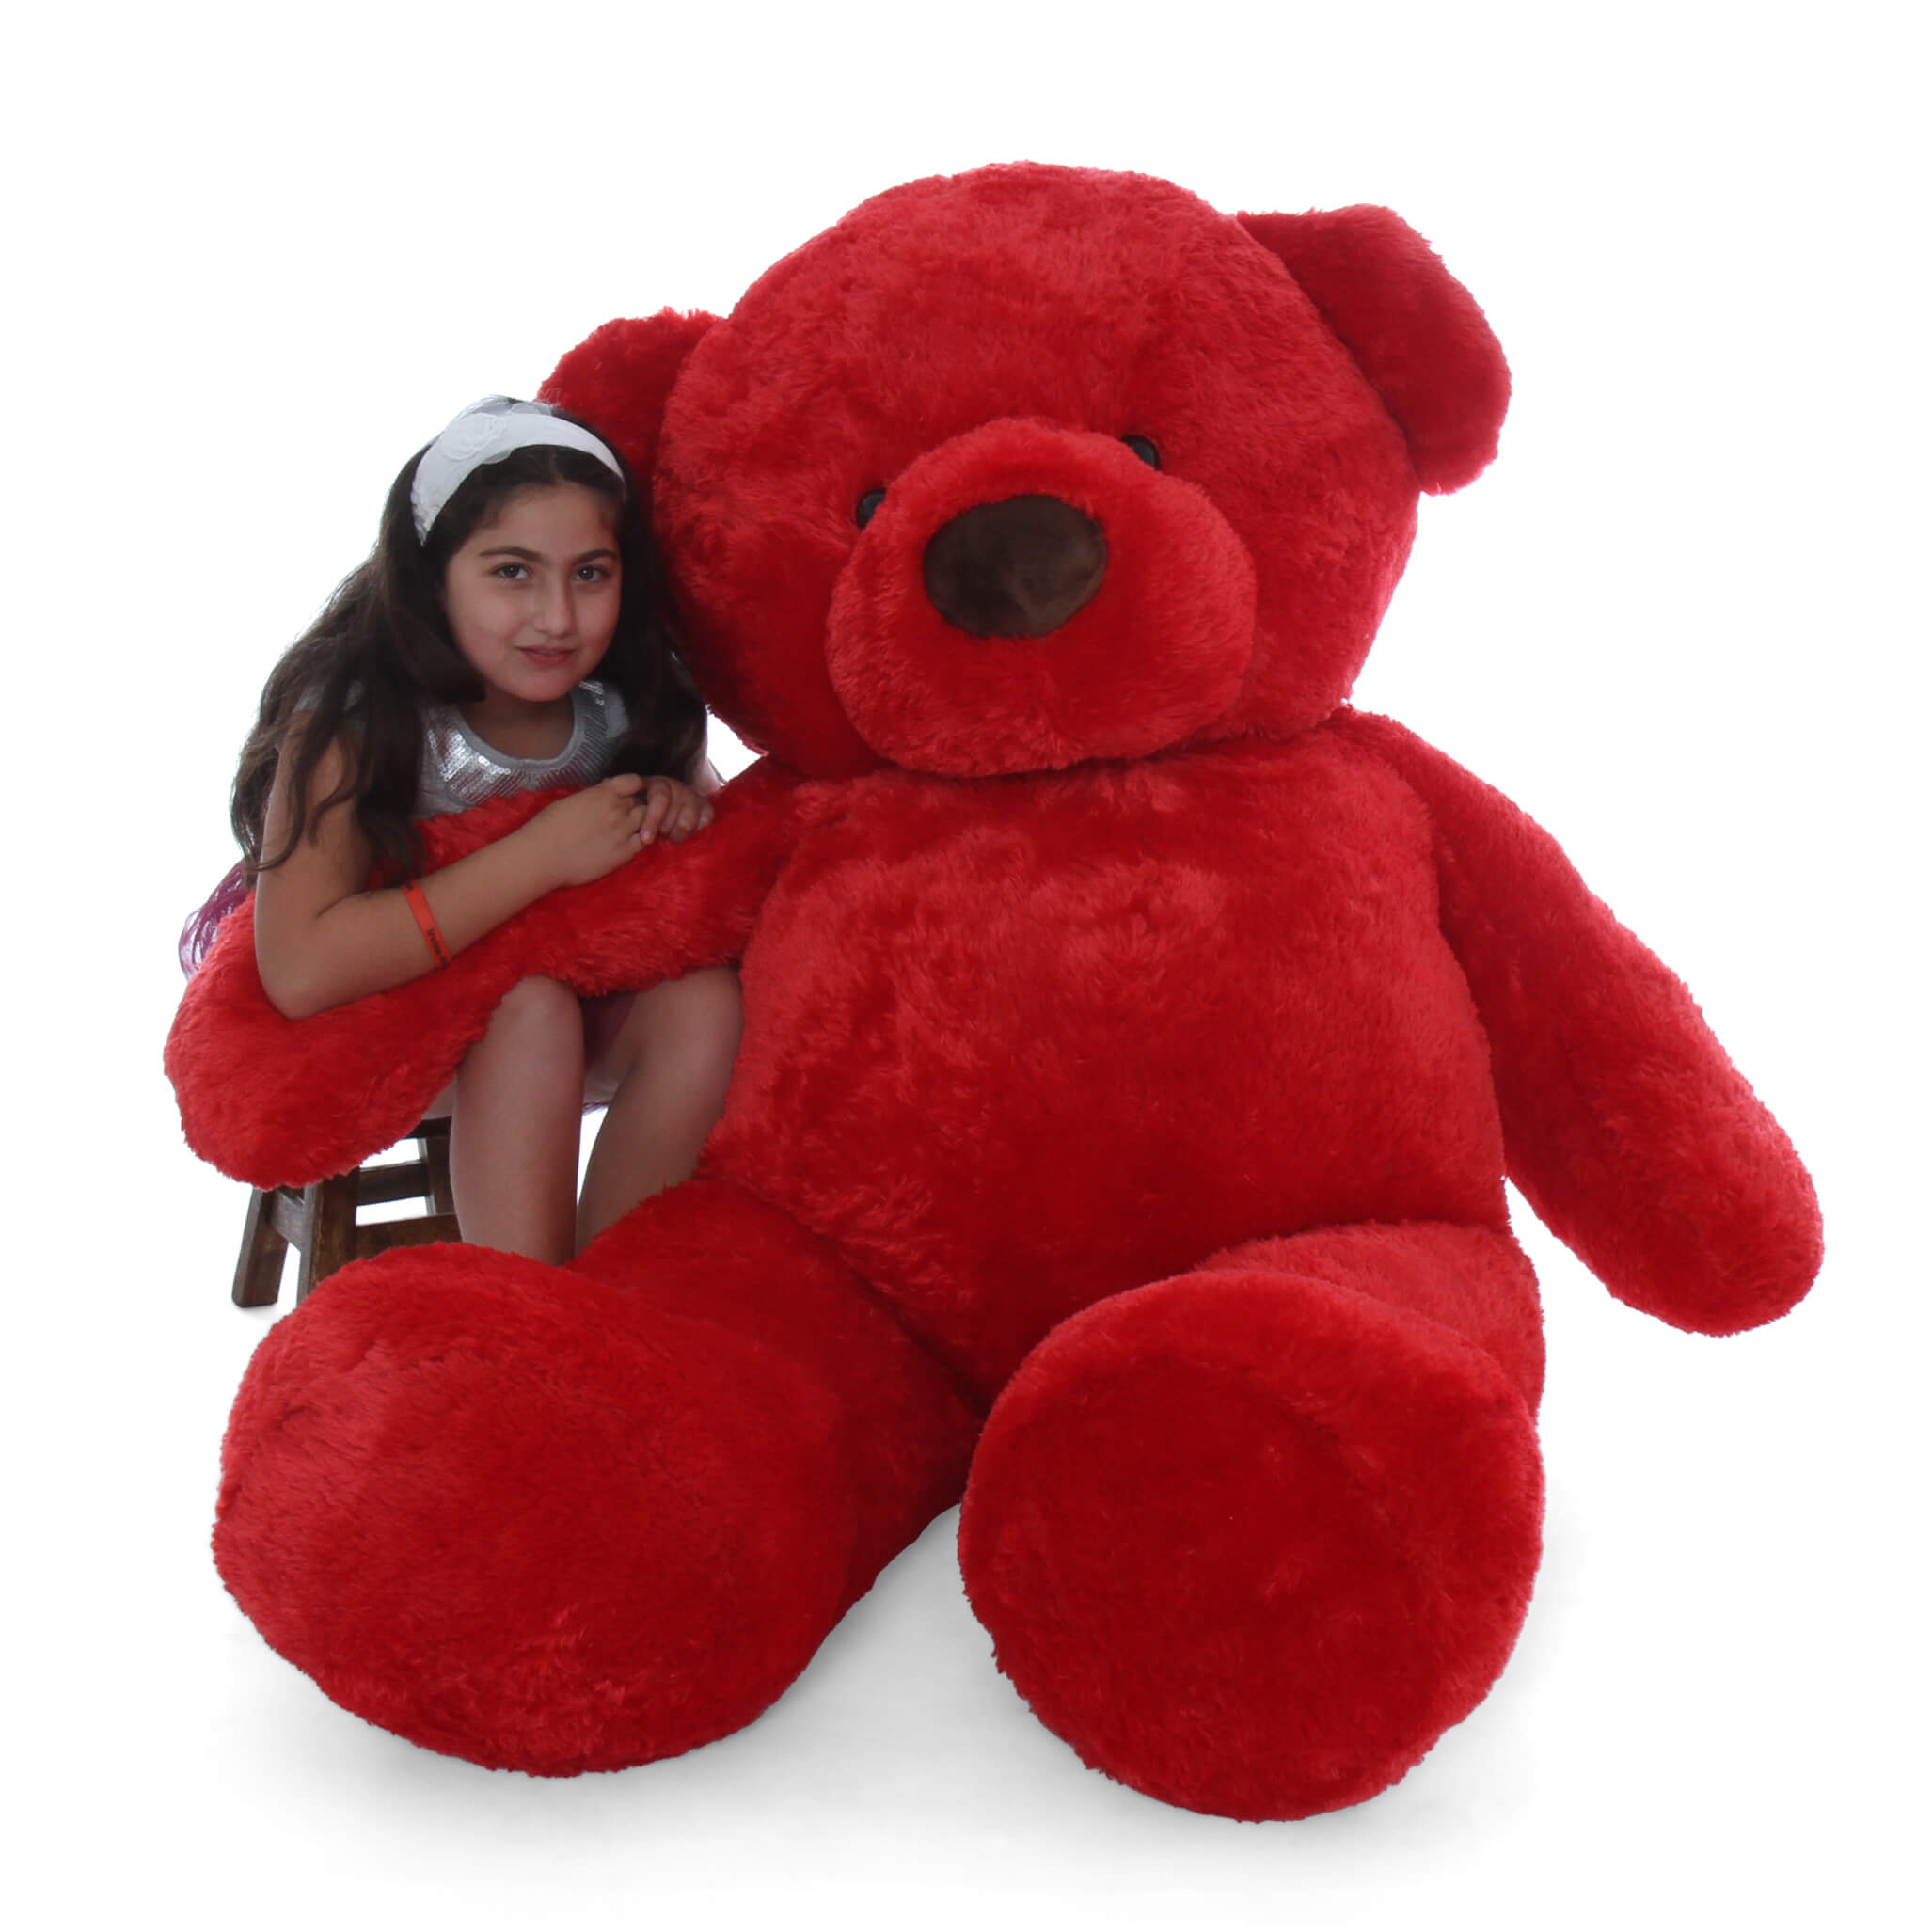 life-size-72in-humongous-red-teddy-bear-riley-chubs-by-giant-teddy-1.jpg